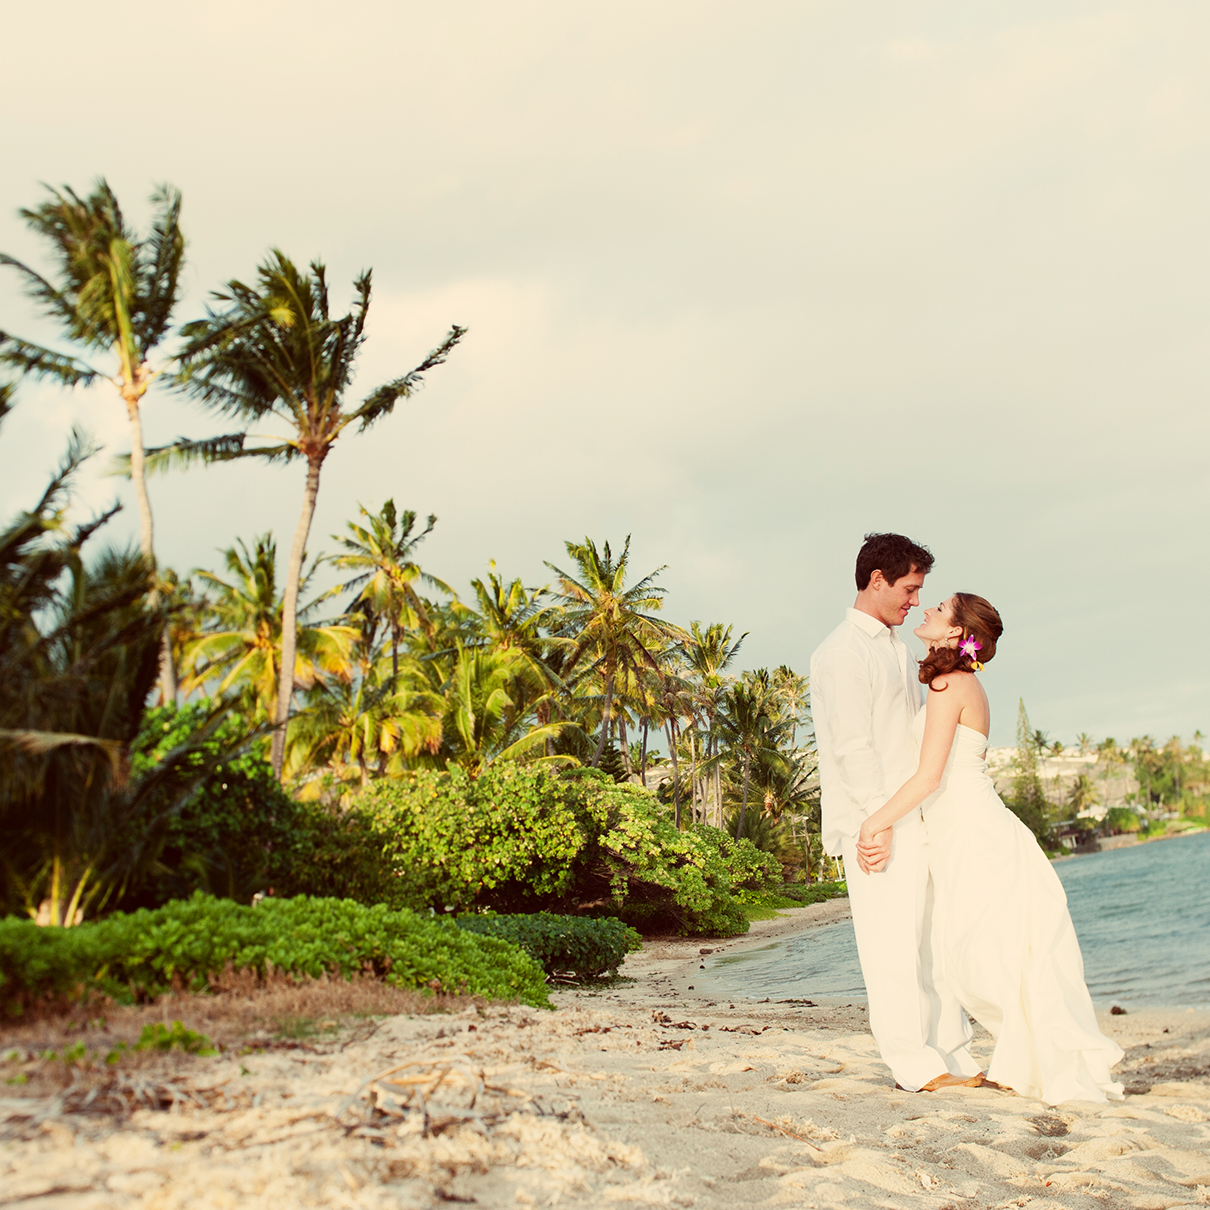 Two Easy Ways To Save Money On Your Wedding Venue And Location